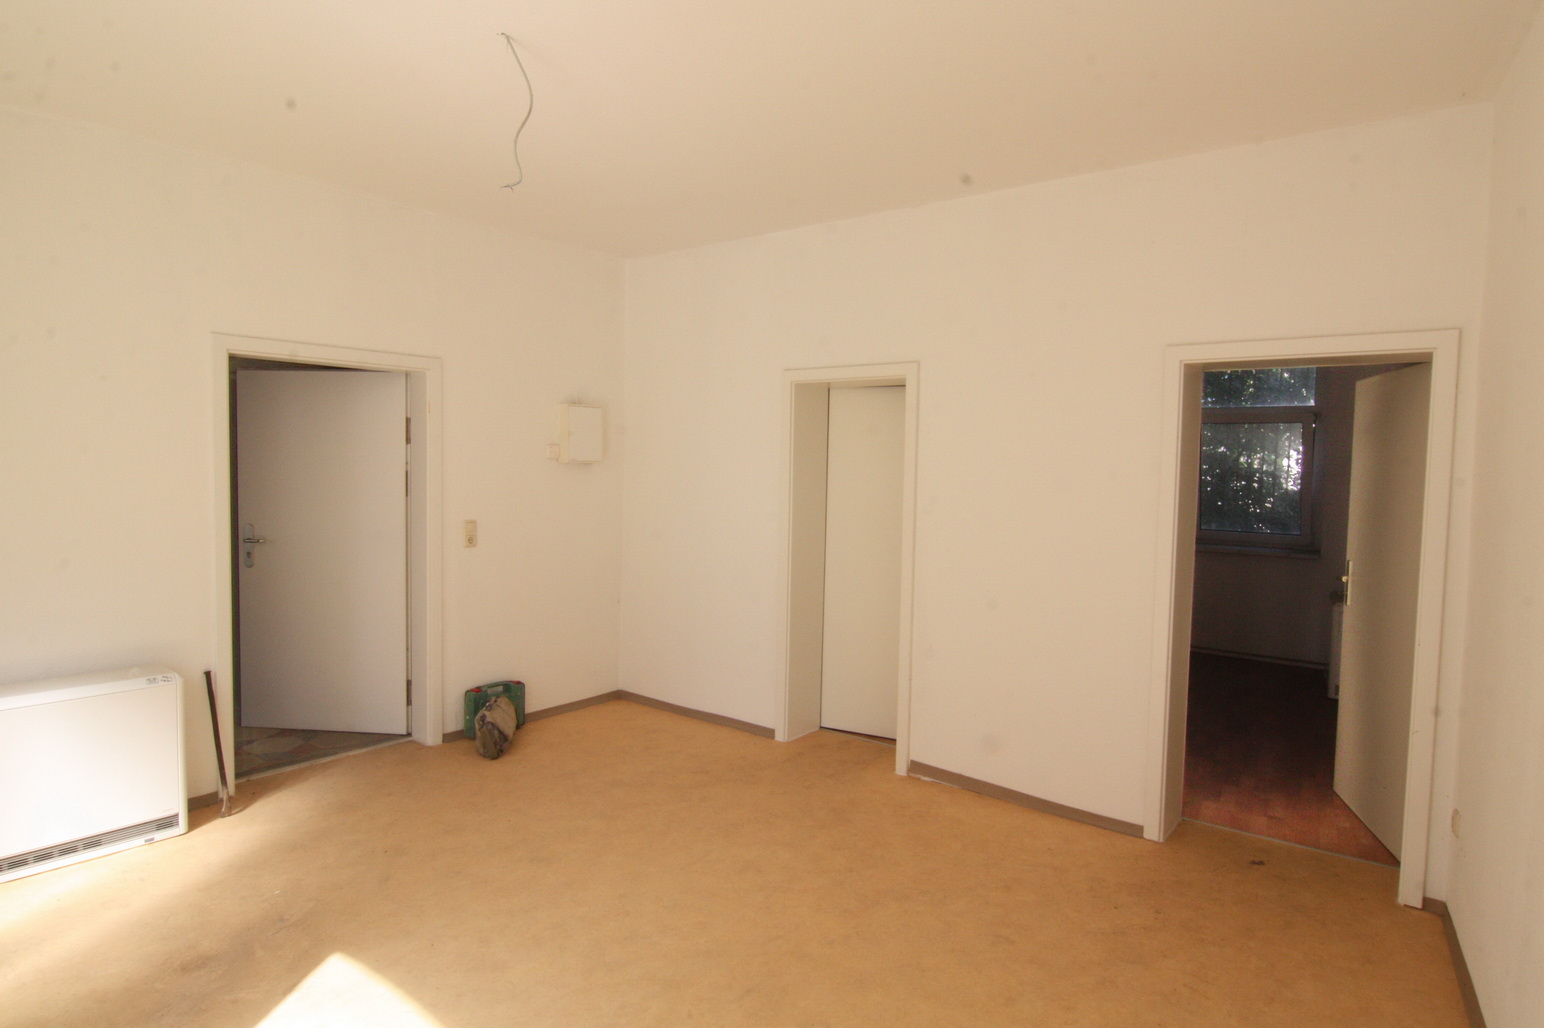 Lot 1 - APARTMENT BLOCK + SHOP UNITS IN DÖBELN, SAXONY, GERMANY NEAR DRESDEN AND MOTORWAY